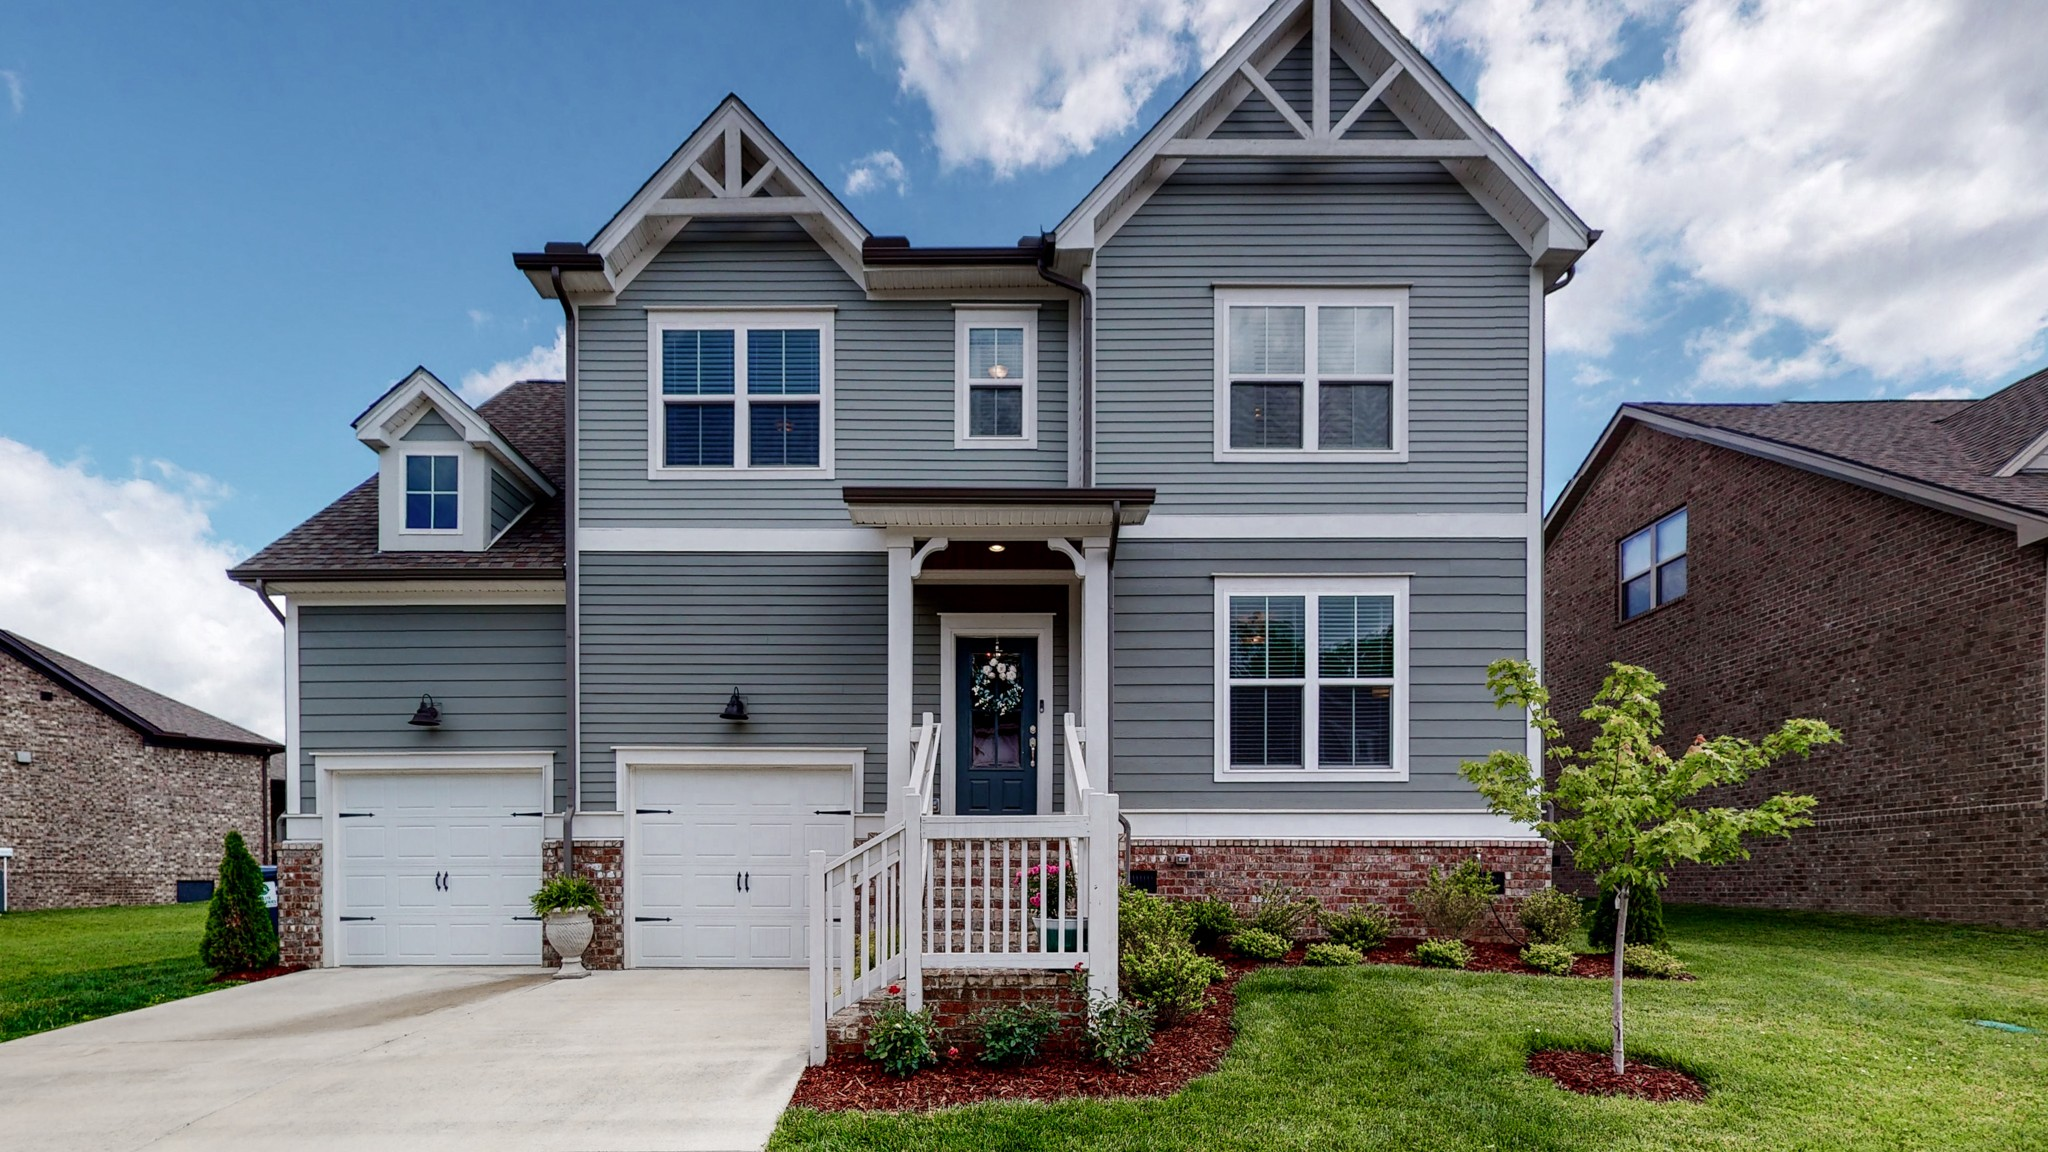 2736 Cloister Ln Property Photo - Thompsons Station, TN real estate listing